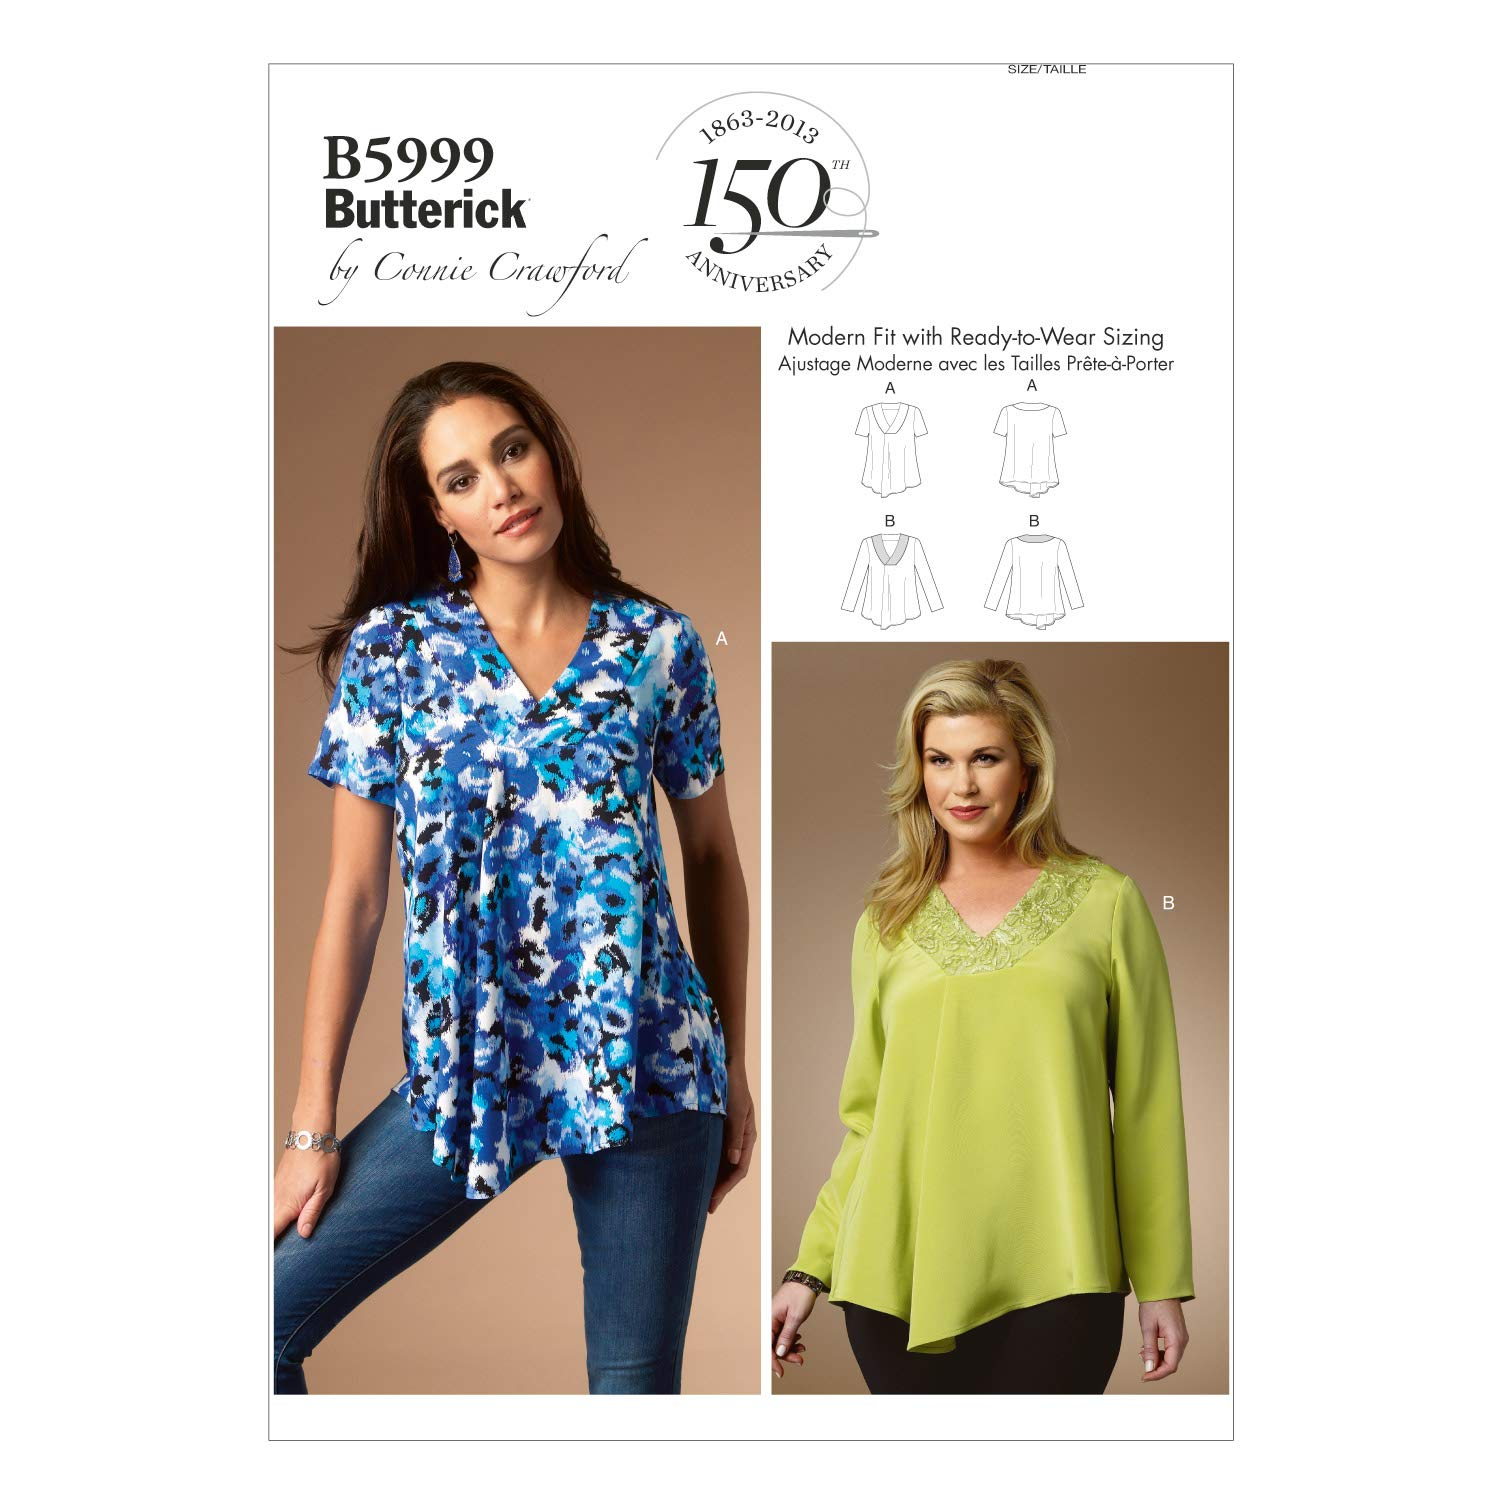 5cd0498d5d1 Amazon.com  BUTTERICK PATTERNS B5999 Misses  Women s Top Sewing Template